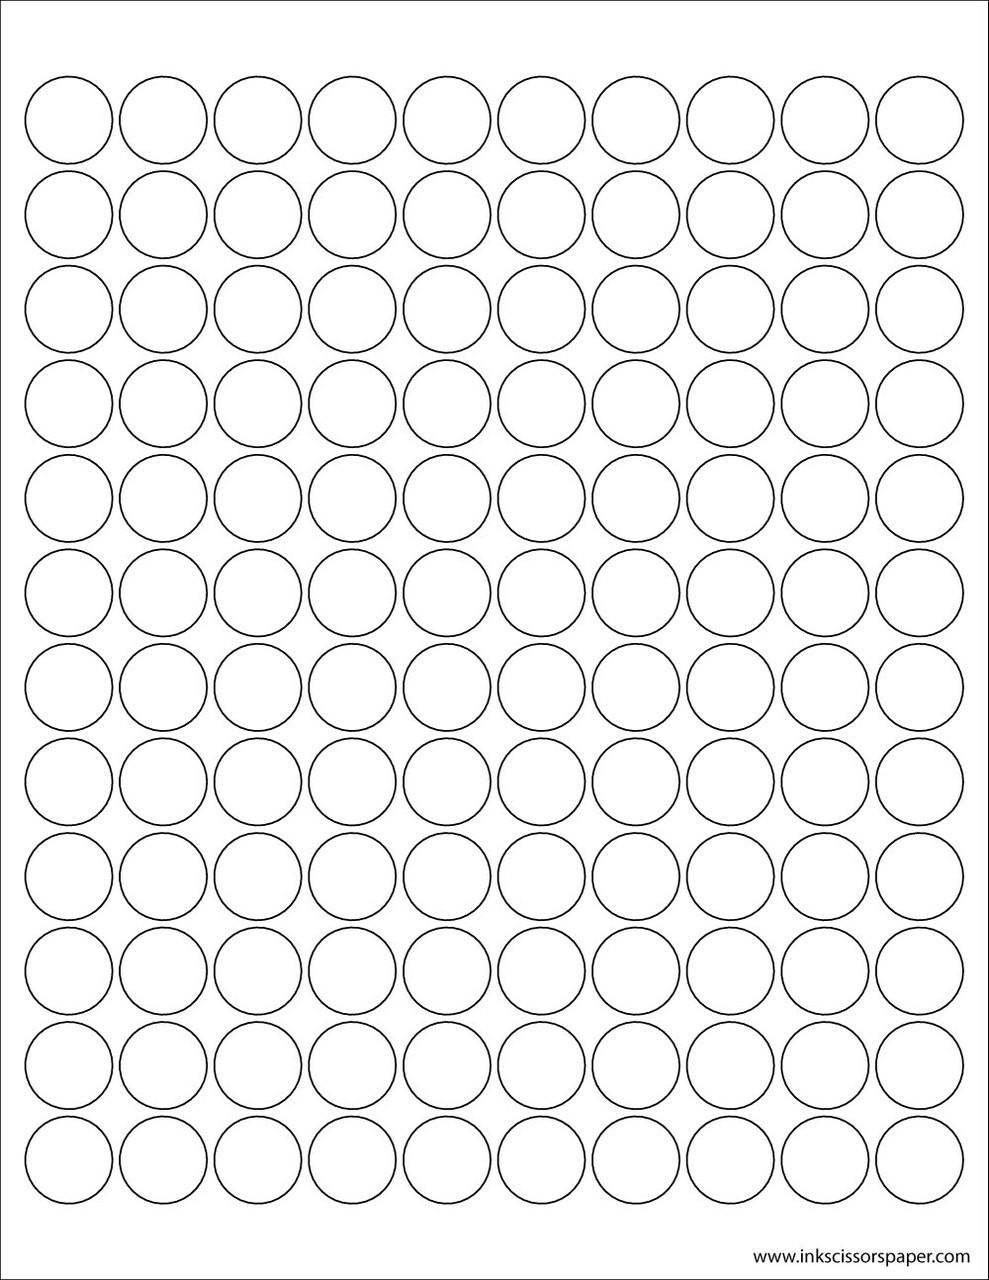 This is a picture of Légend 1 1 4 Inch Round Labels Template Free